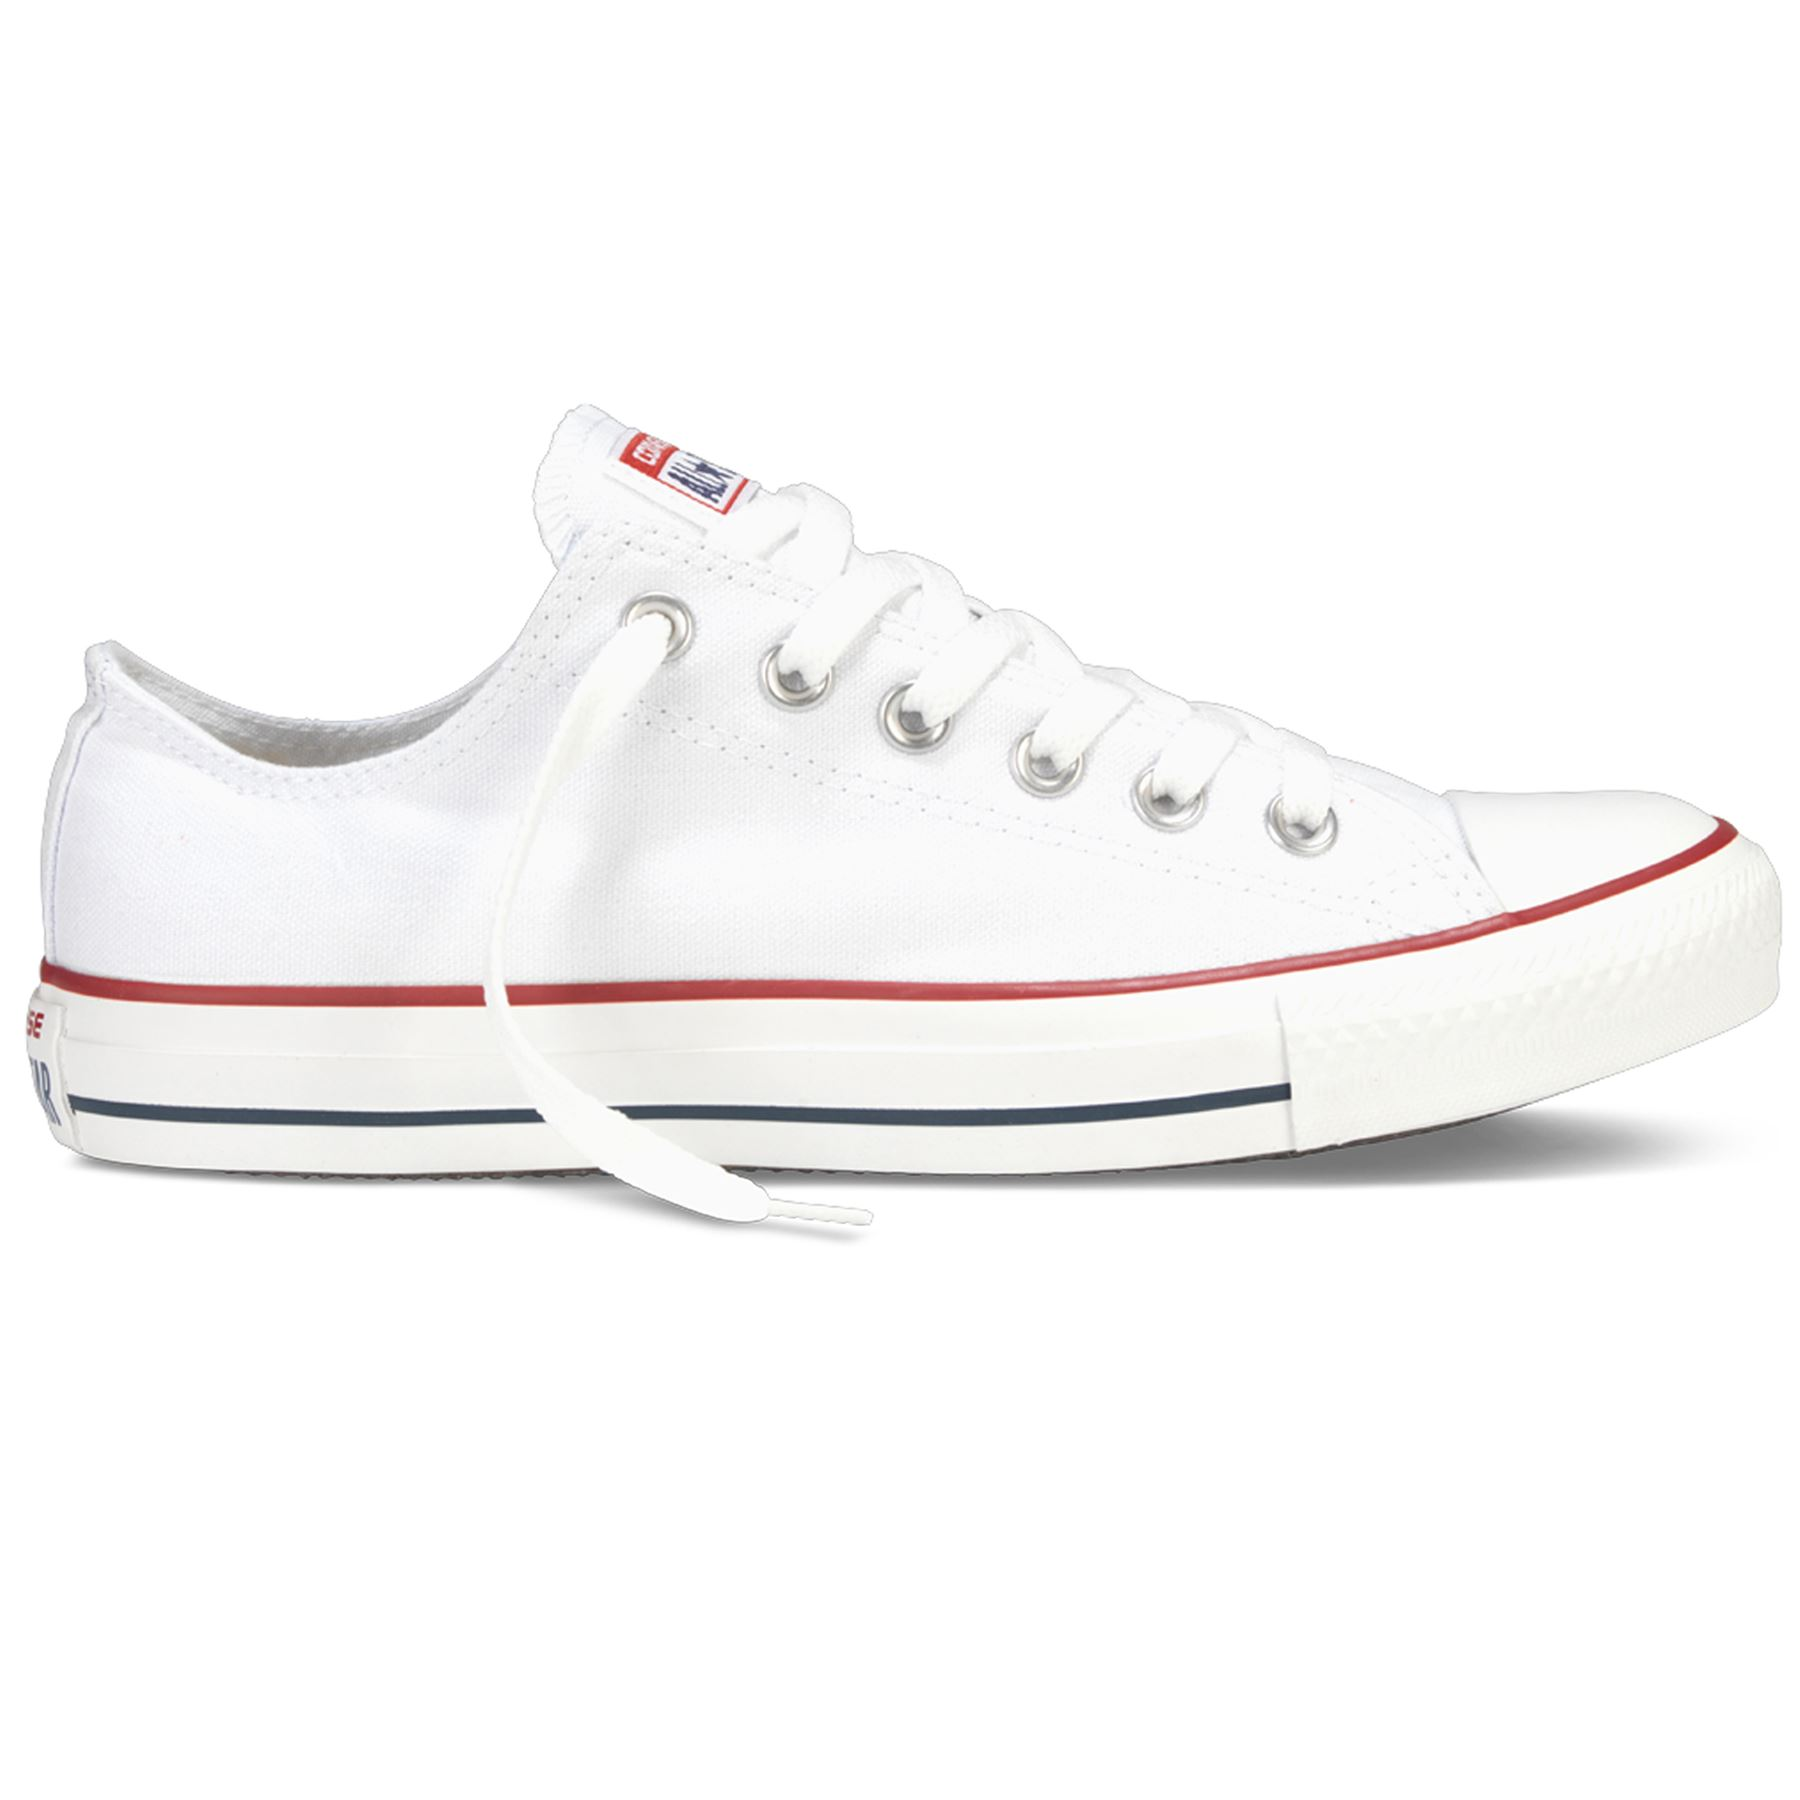 Converse-All-Star-Chuck-Taylor-Mens-Womens-Trainers-Lo-Tops-Pumps-Unisex-Sneaker thumbnail 34